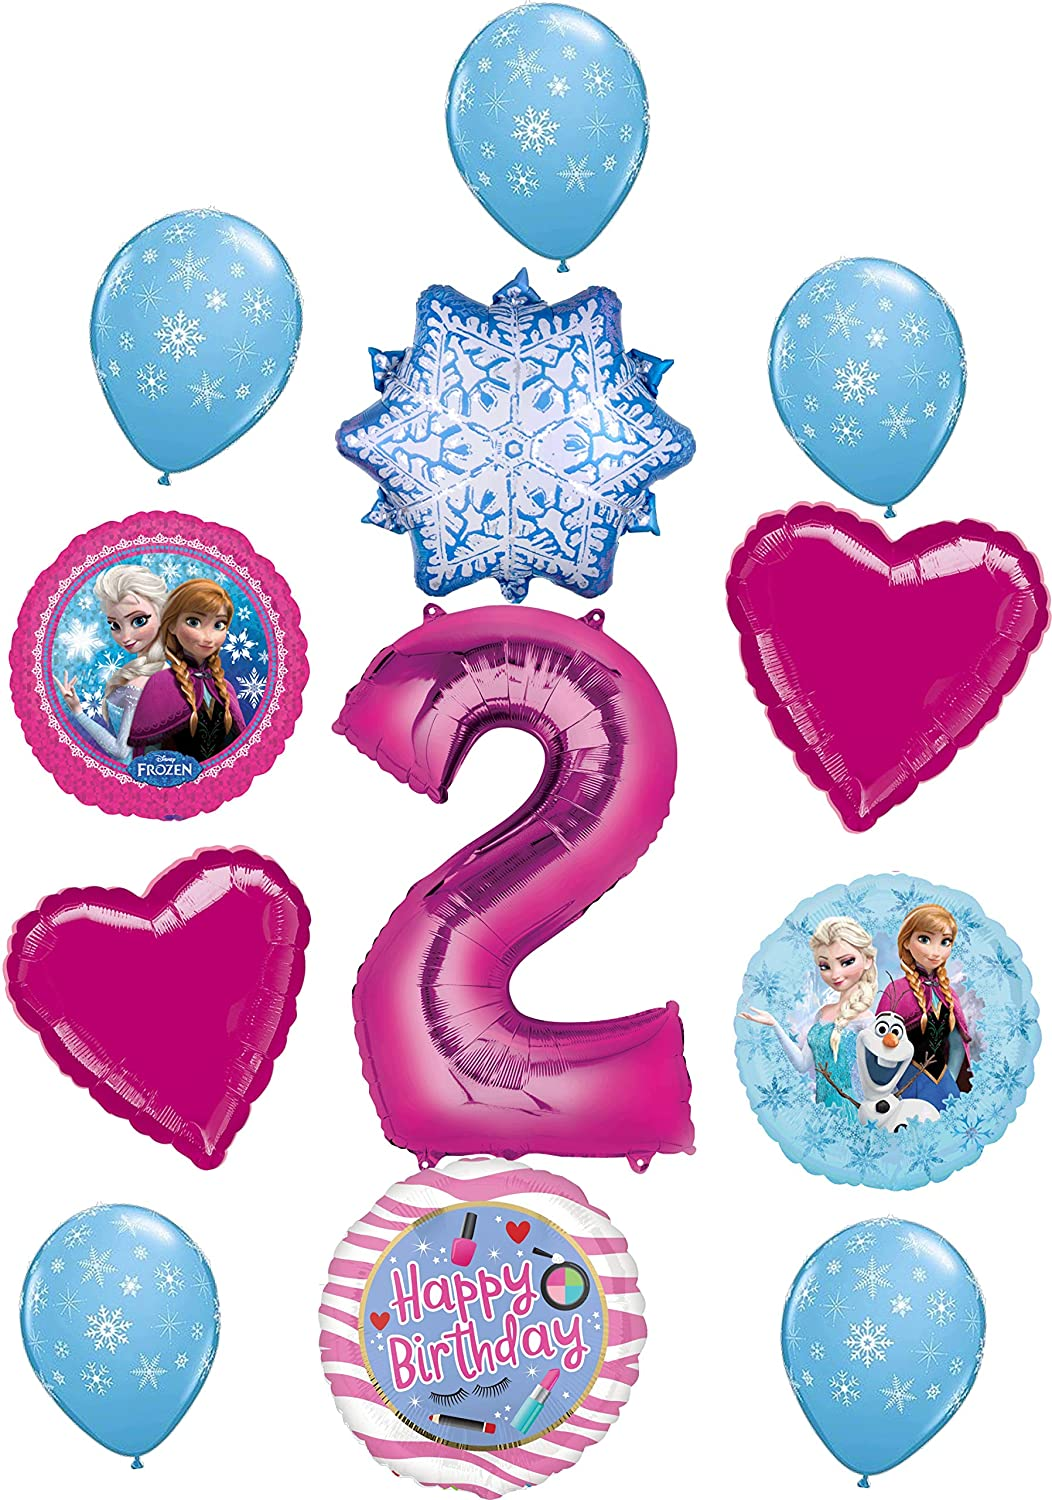 Frozen Party Supplies 2nd Birthday Balloon Bouquet Decorations Elsa, Anna and Olaf Let It Snow